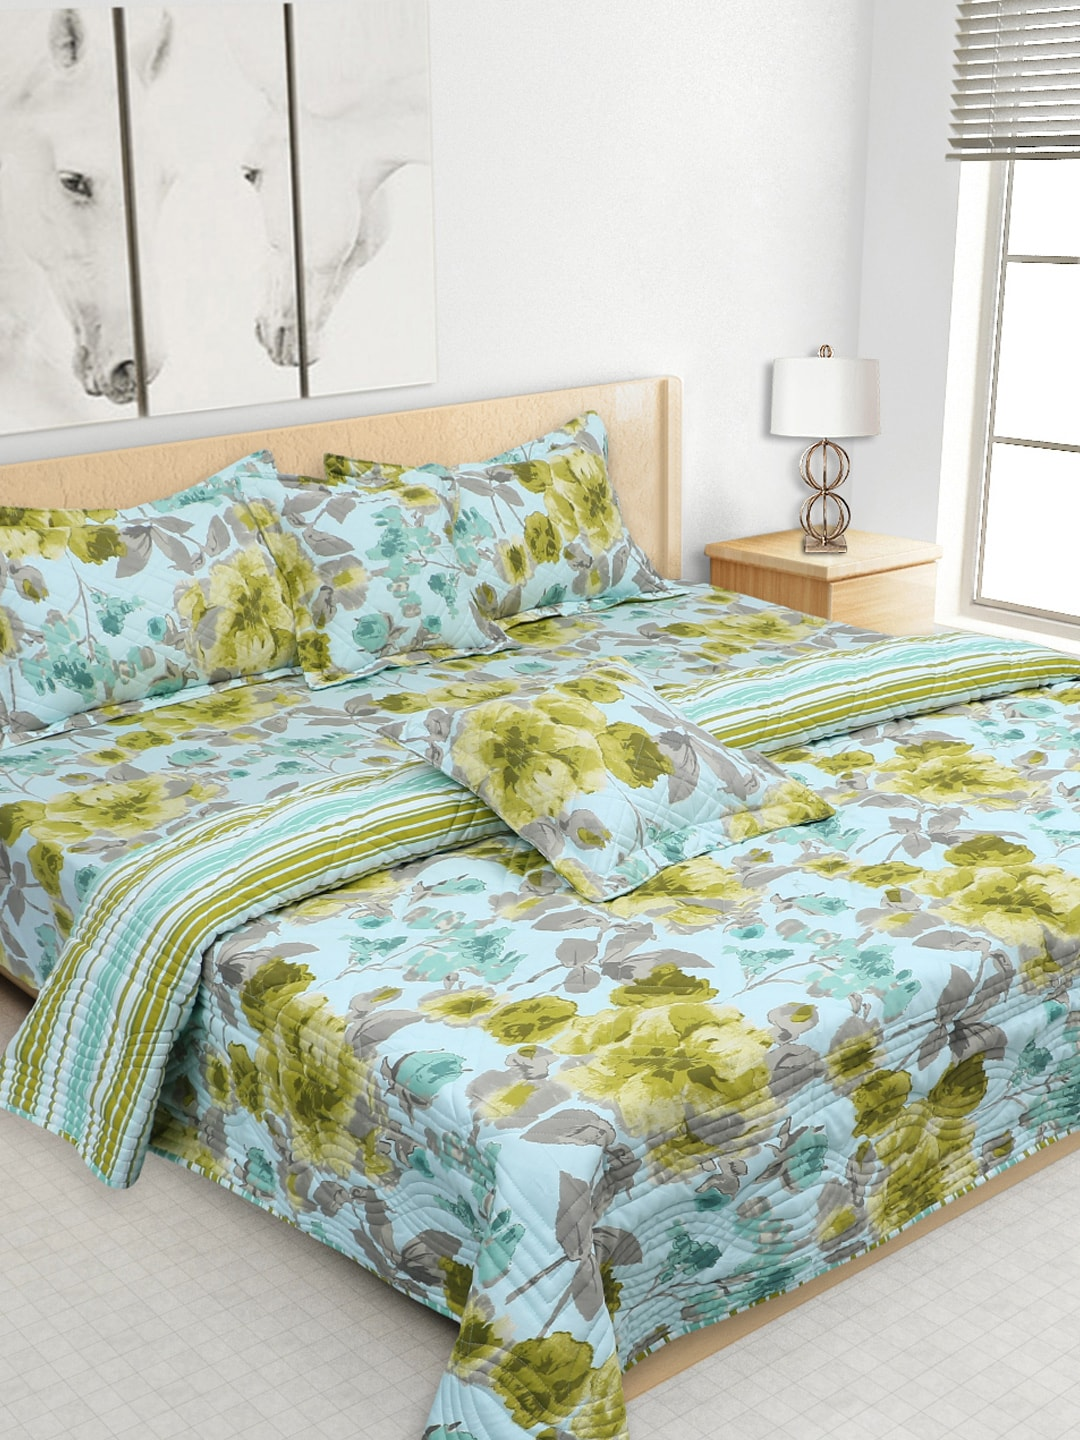 S9home by Seasons Blue Printed Co-Ordinated Bedding Set with Quilt (Comforter)